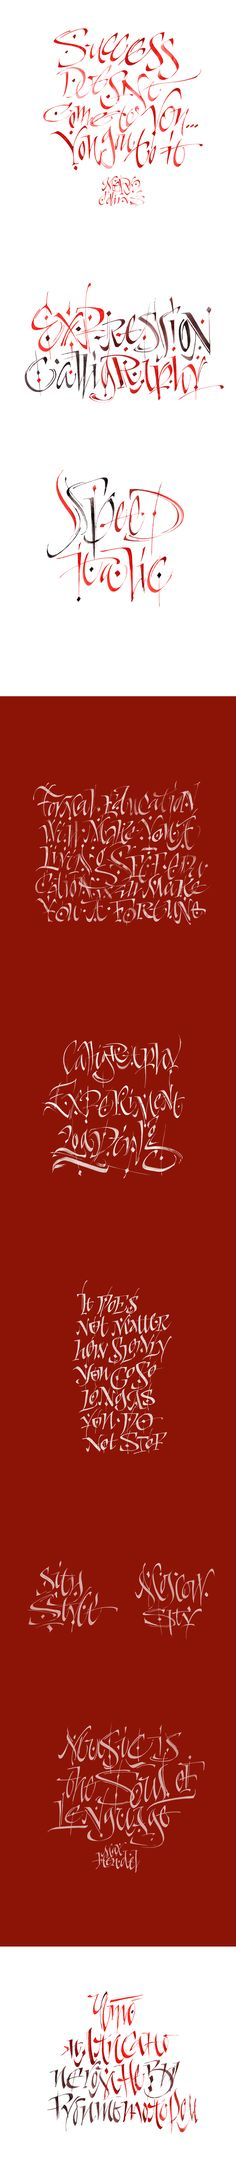 Expression Calligraphy_experiment on Behance